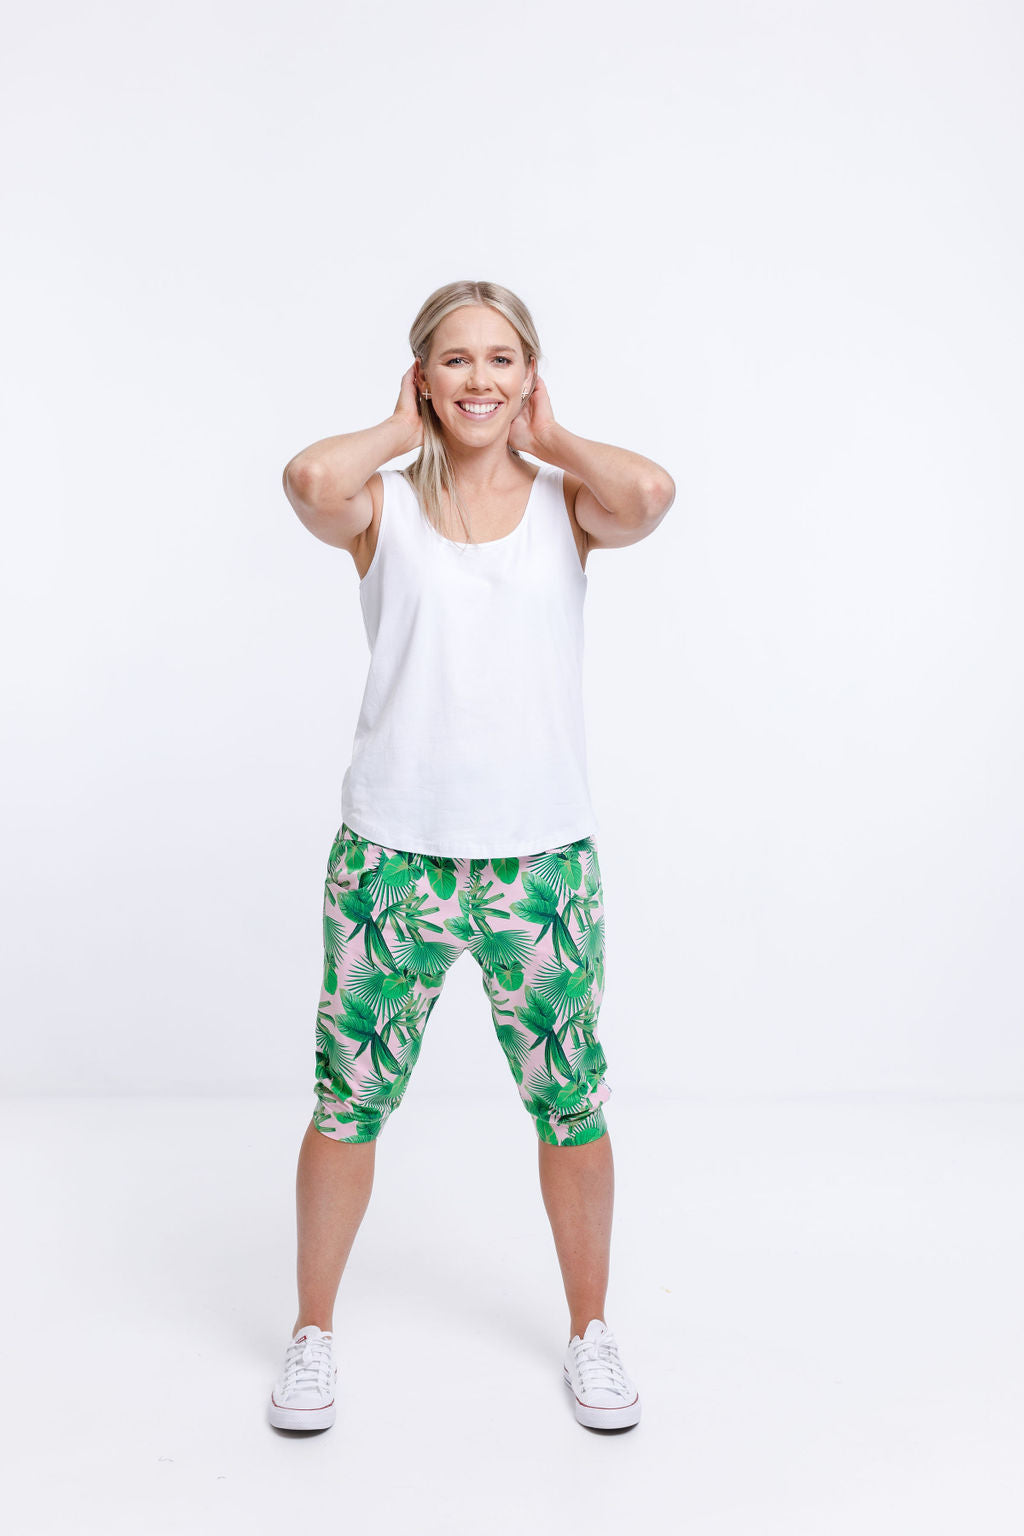 3/4 APARTMENT PANTS - Tropical Palm Print